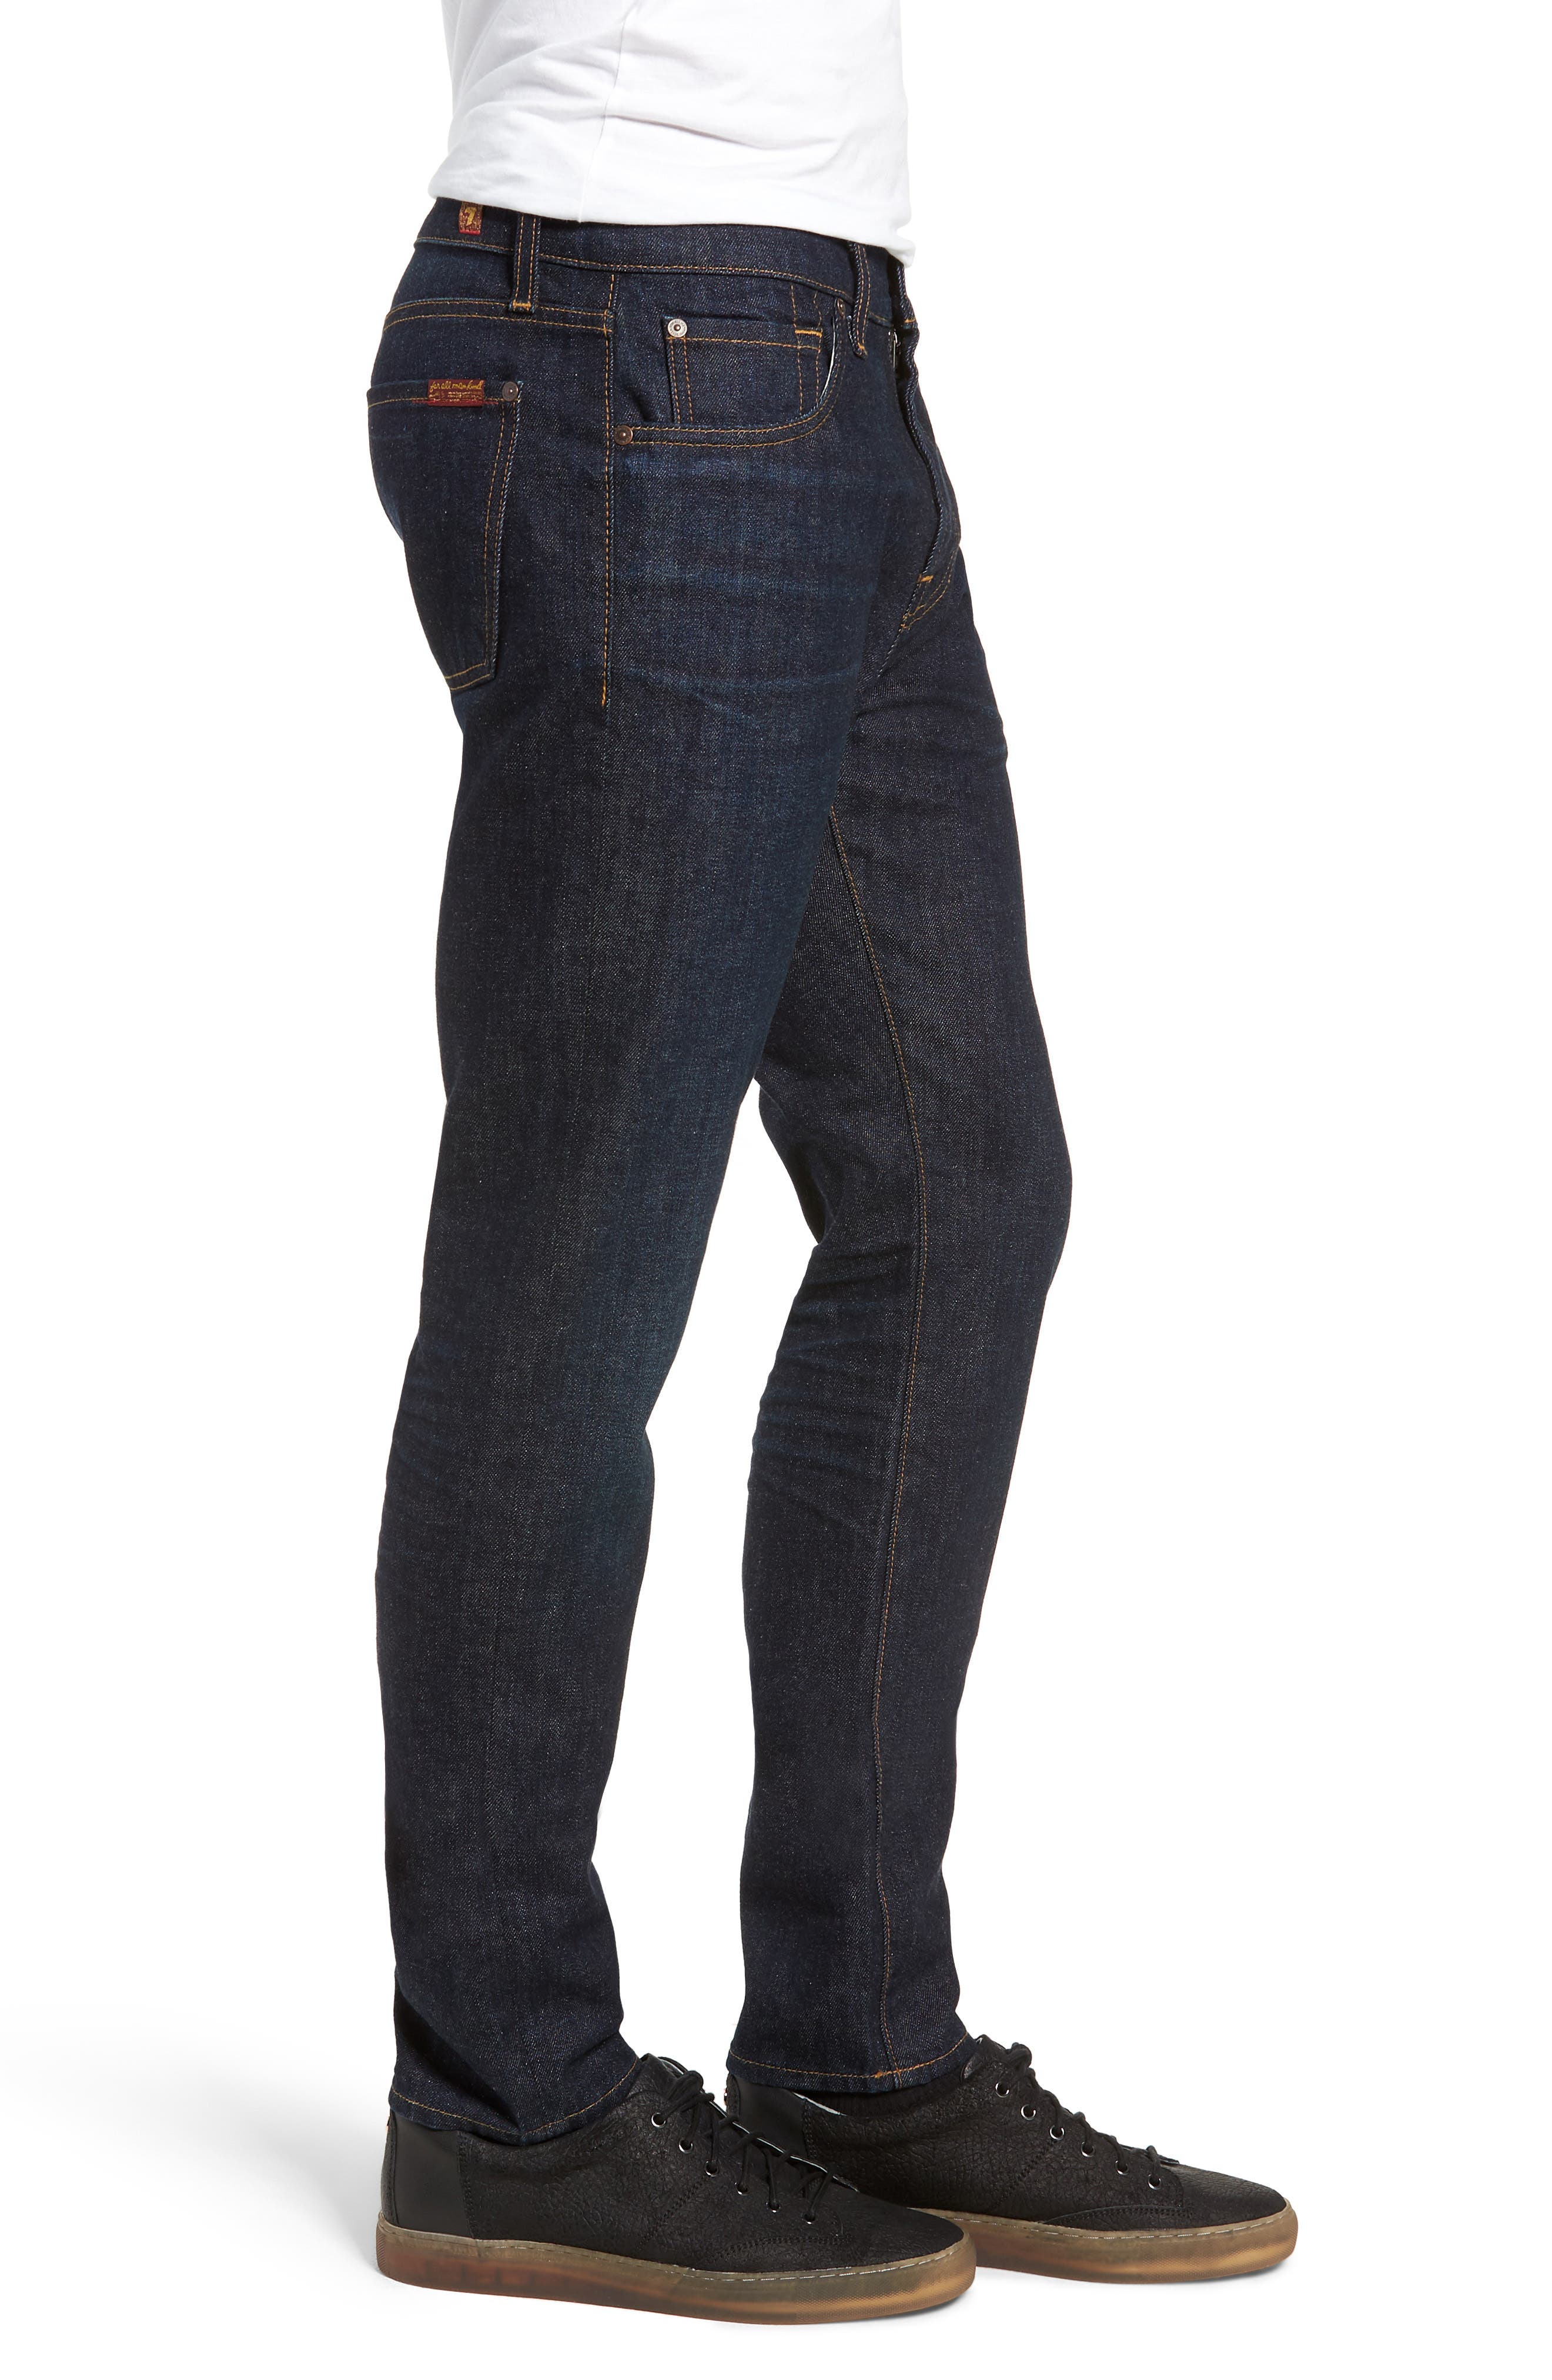 Ryley Skinny Fit Jeans,                             Alternate thumbnail 3, color,                             400